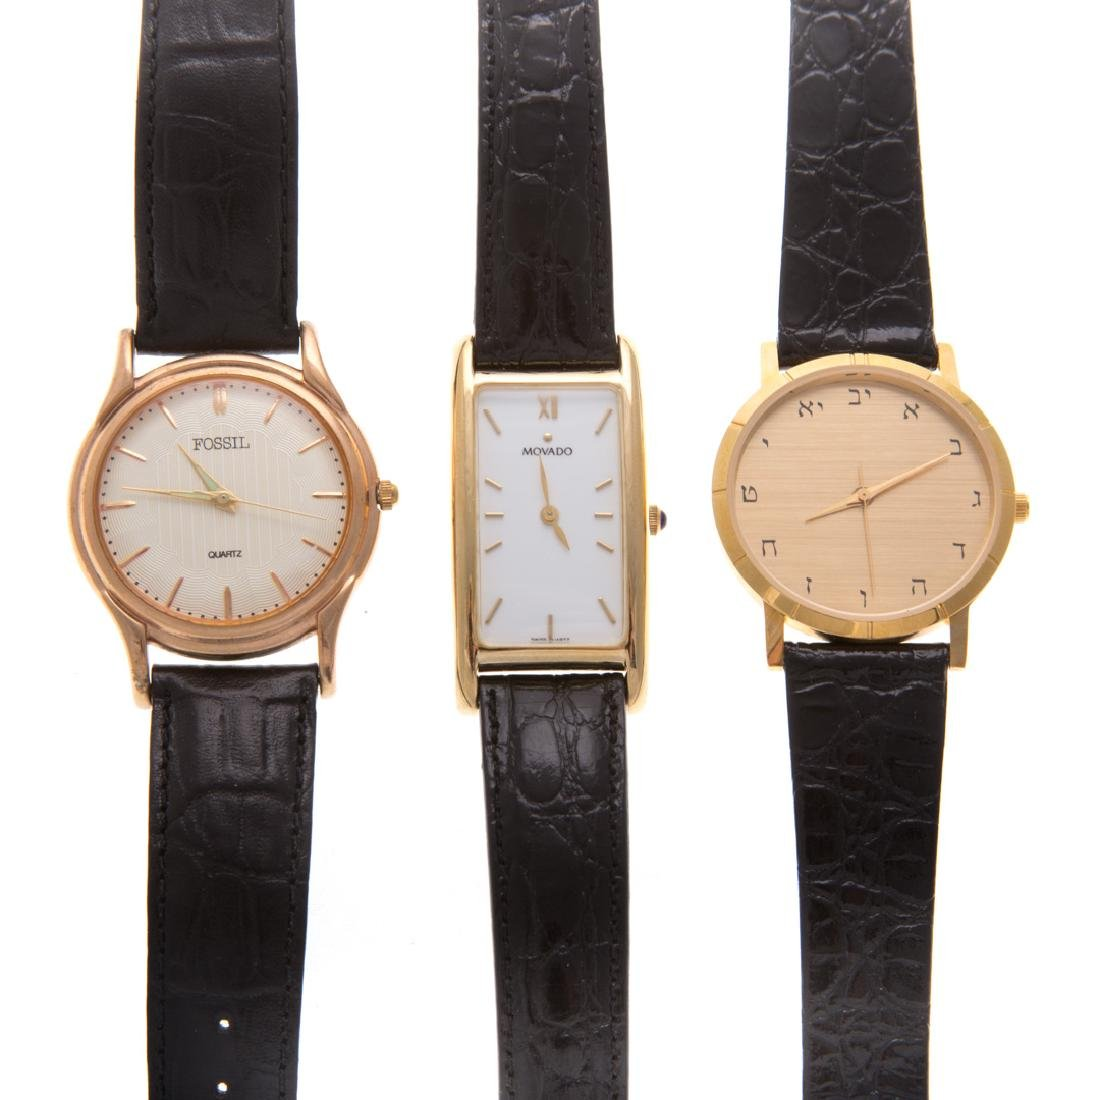 A Trio of Gent's Wrist Watches